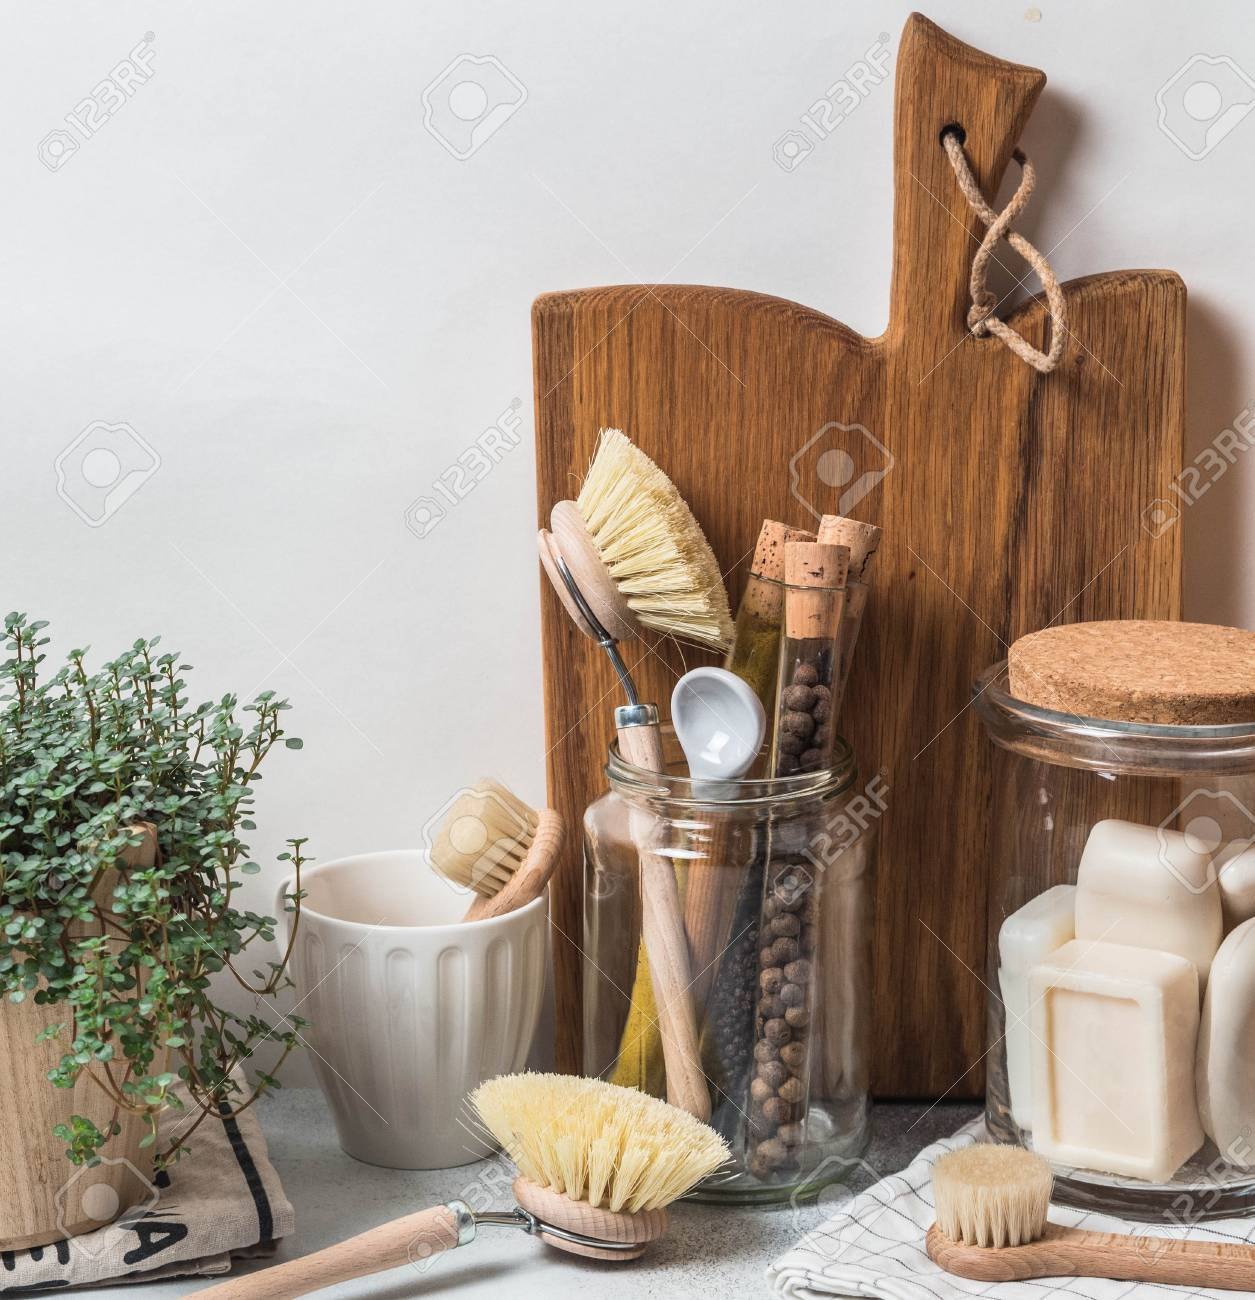 Zero Waste Concept Eco Friendly Kitchen Set Brushes Soap In